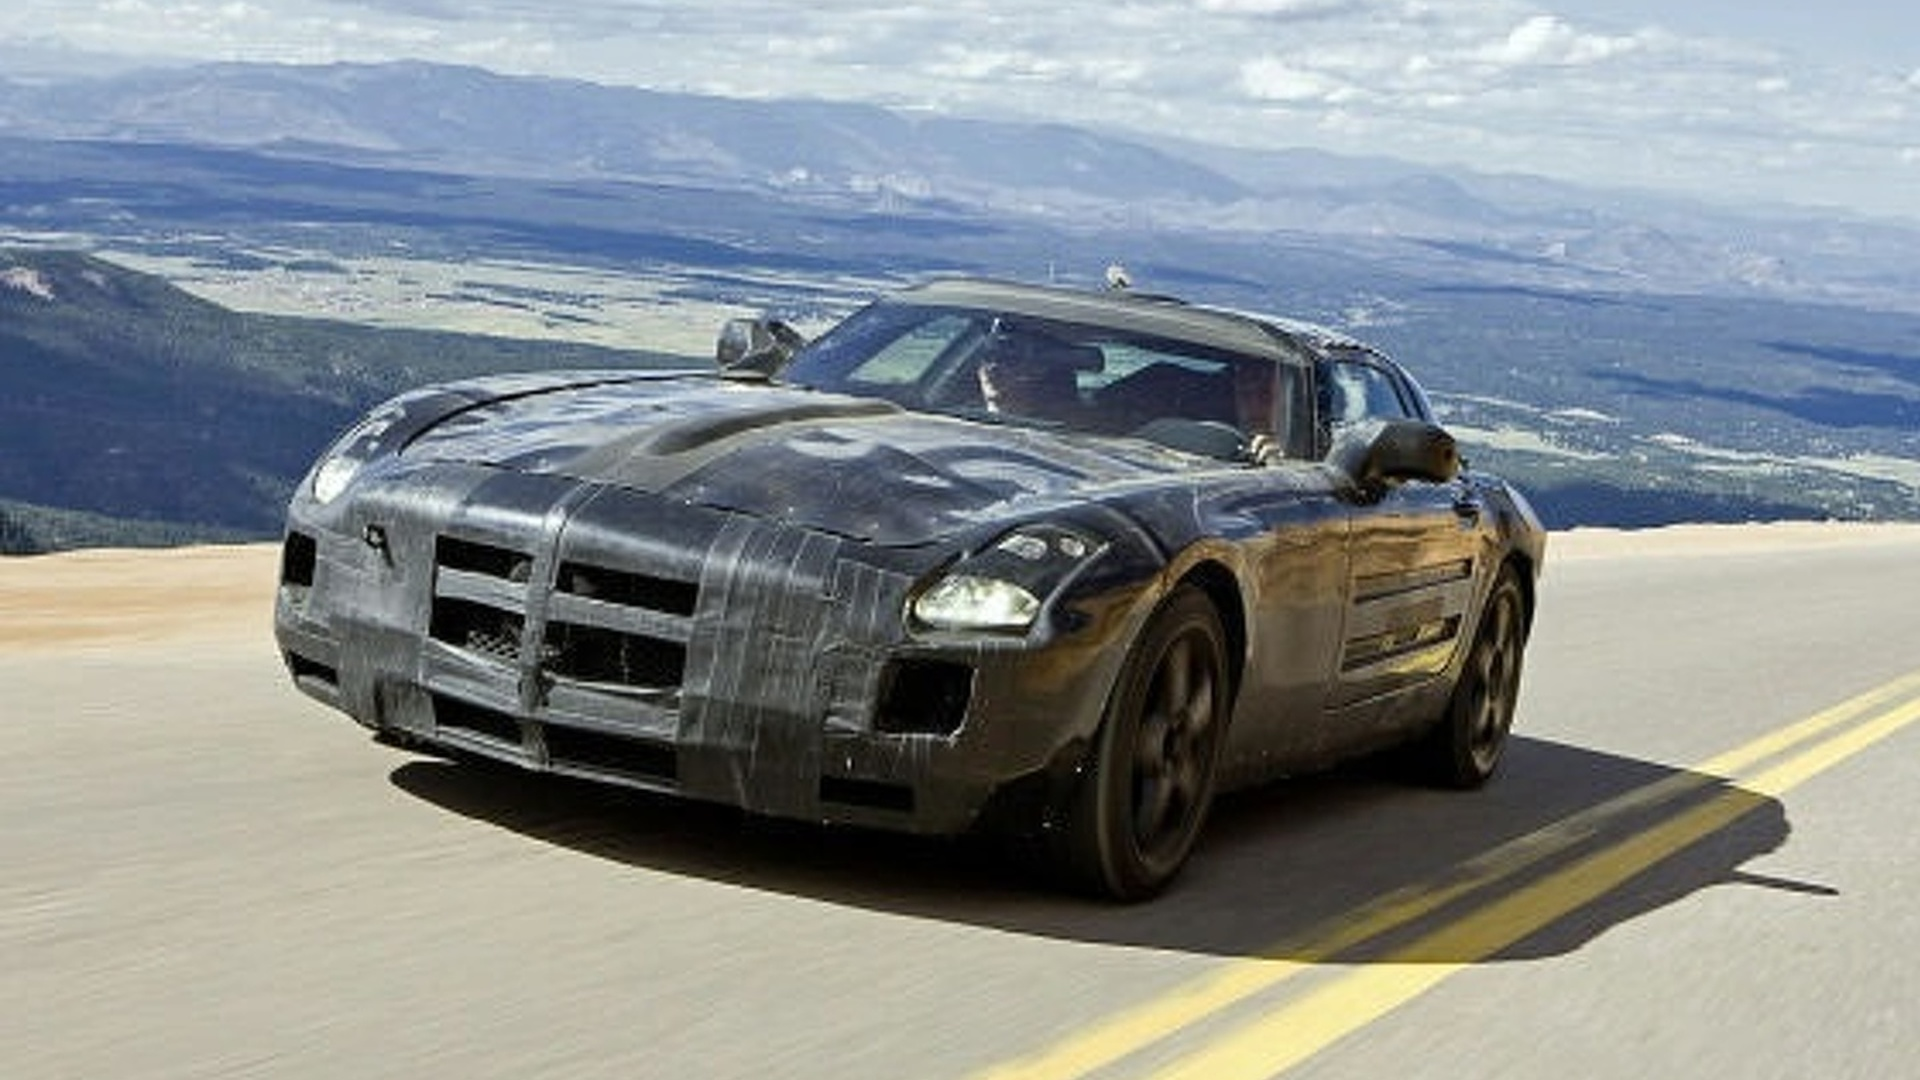 Mercedes SLS AMG Gullwing to come with 571hp and €140,000 Price Tag